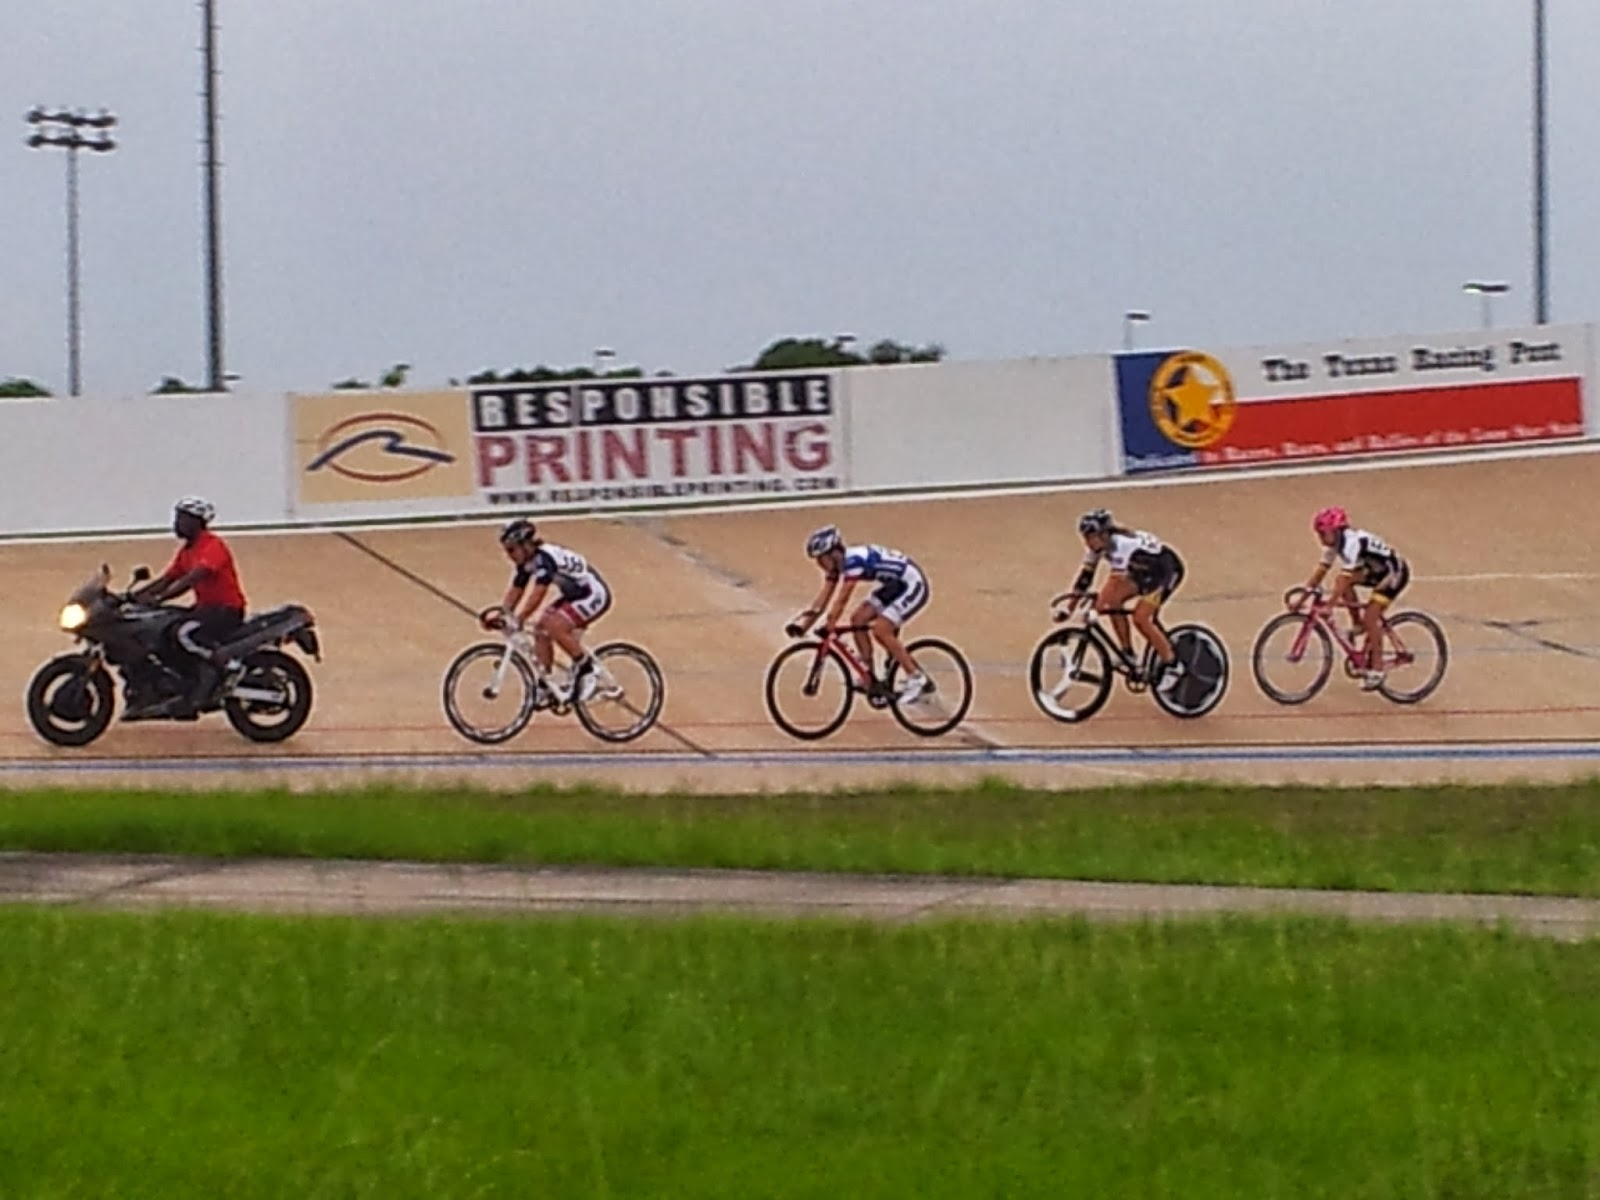 Cyclists being paced by motorcycle during race at Alkek Velodrome